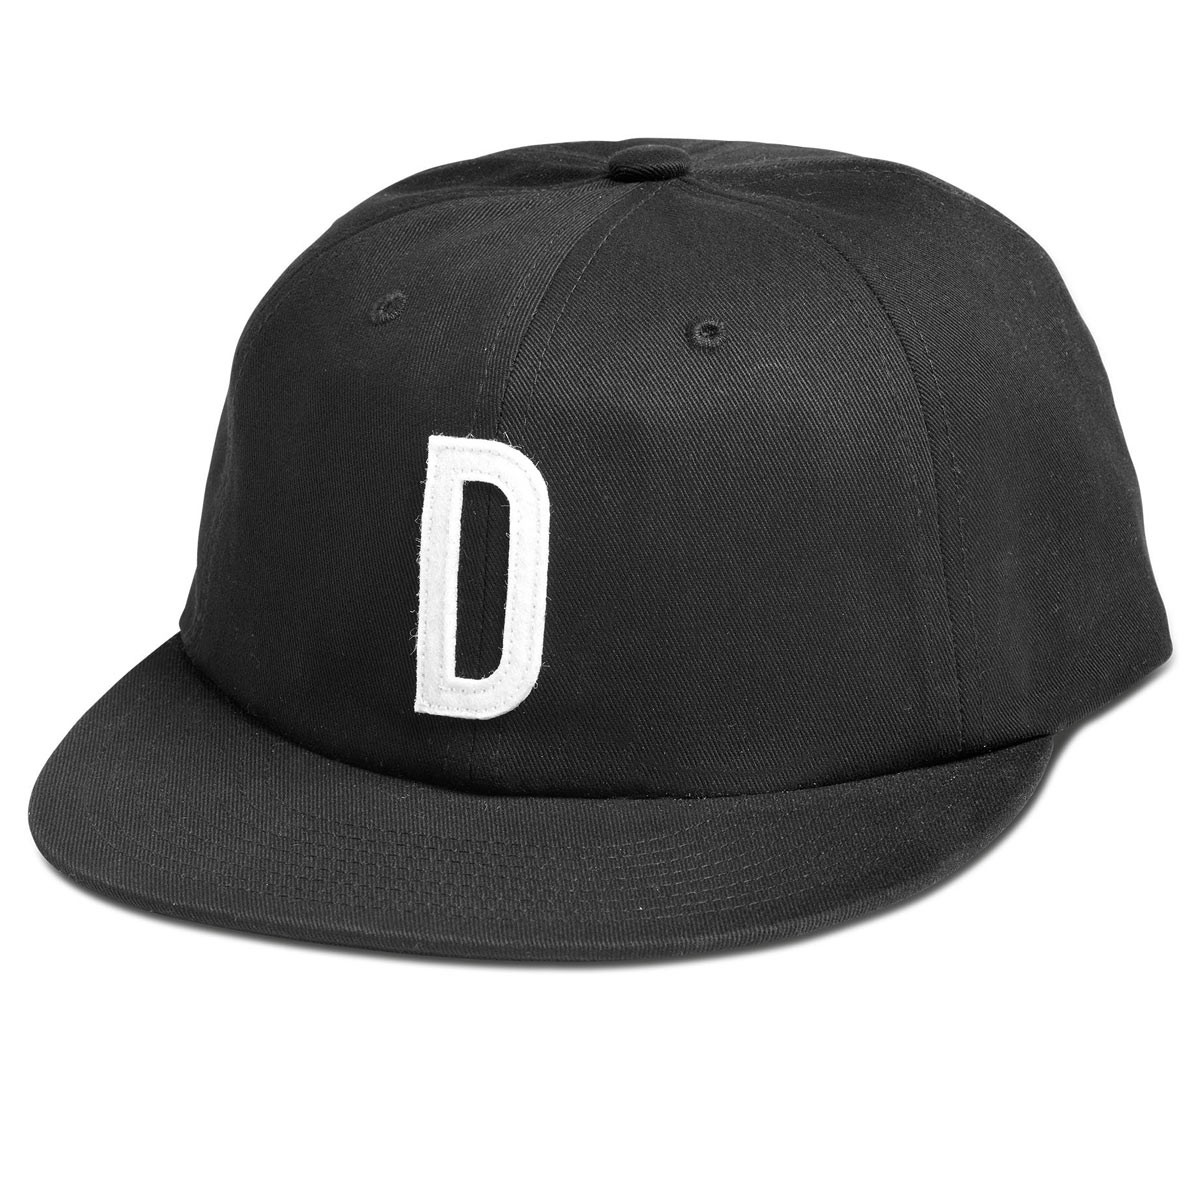 2770f6d4e4b ... closeout diamond supply co. home team unconstructed 6 panel snapback  sp18 hat ac66f 6bd71